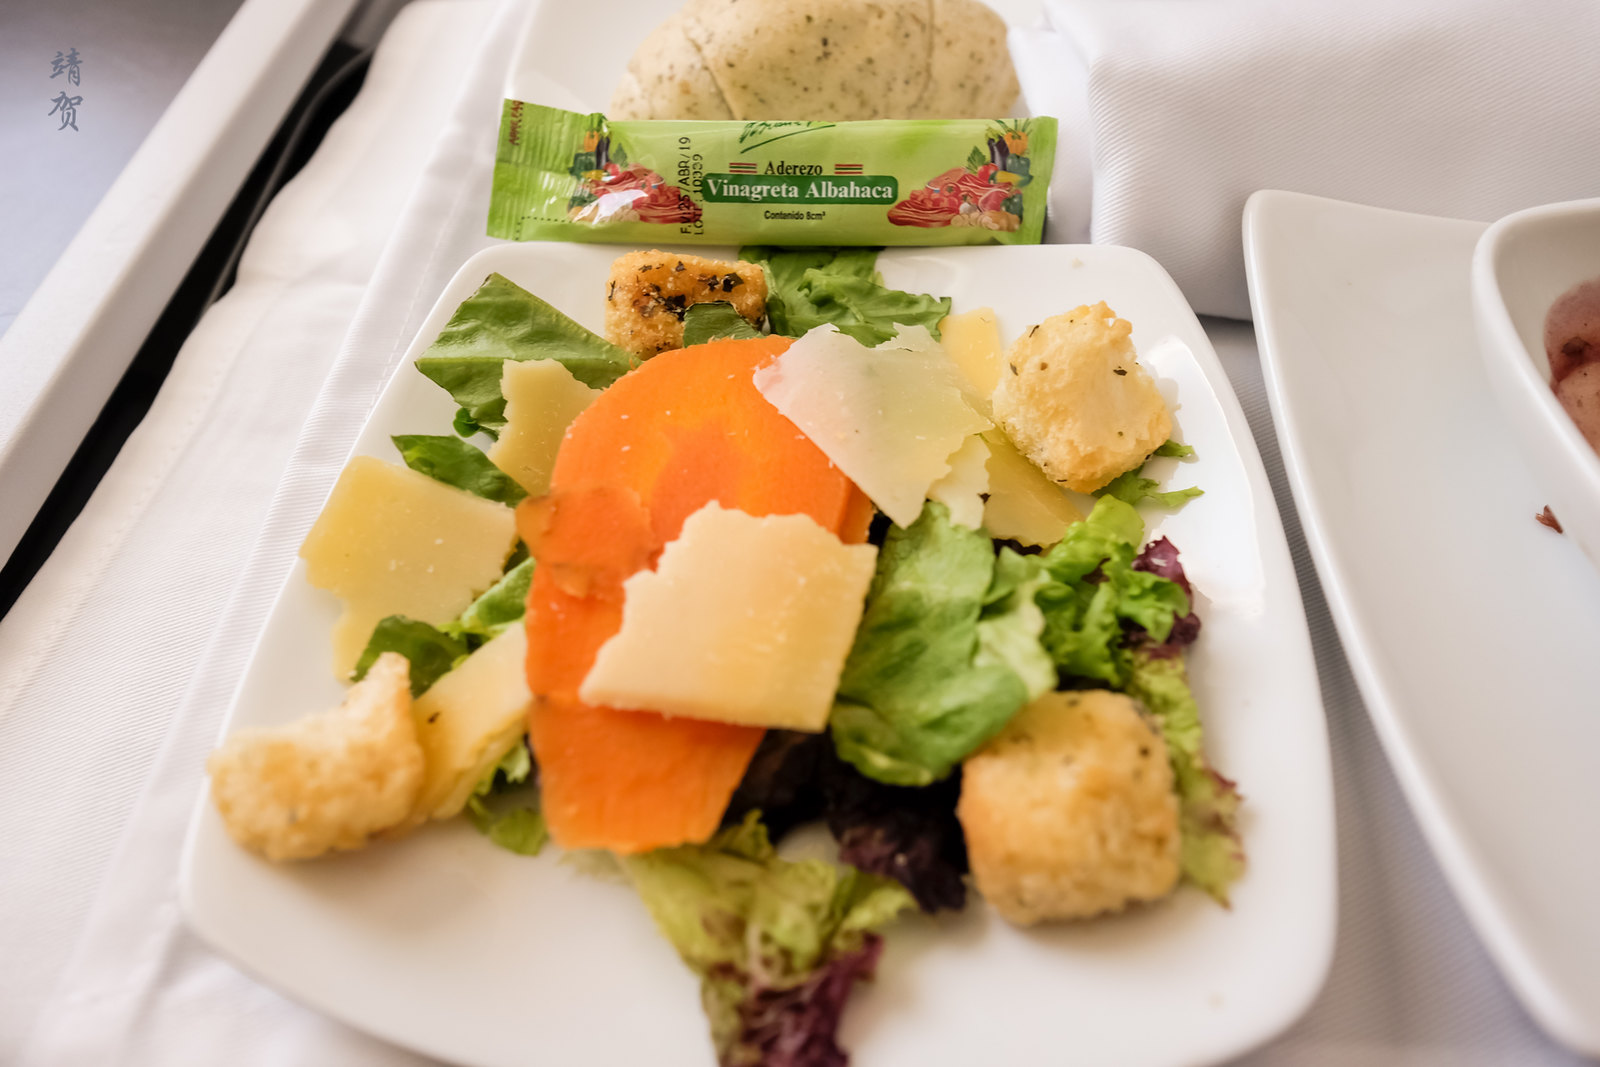 Salad with croutons and cheese